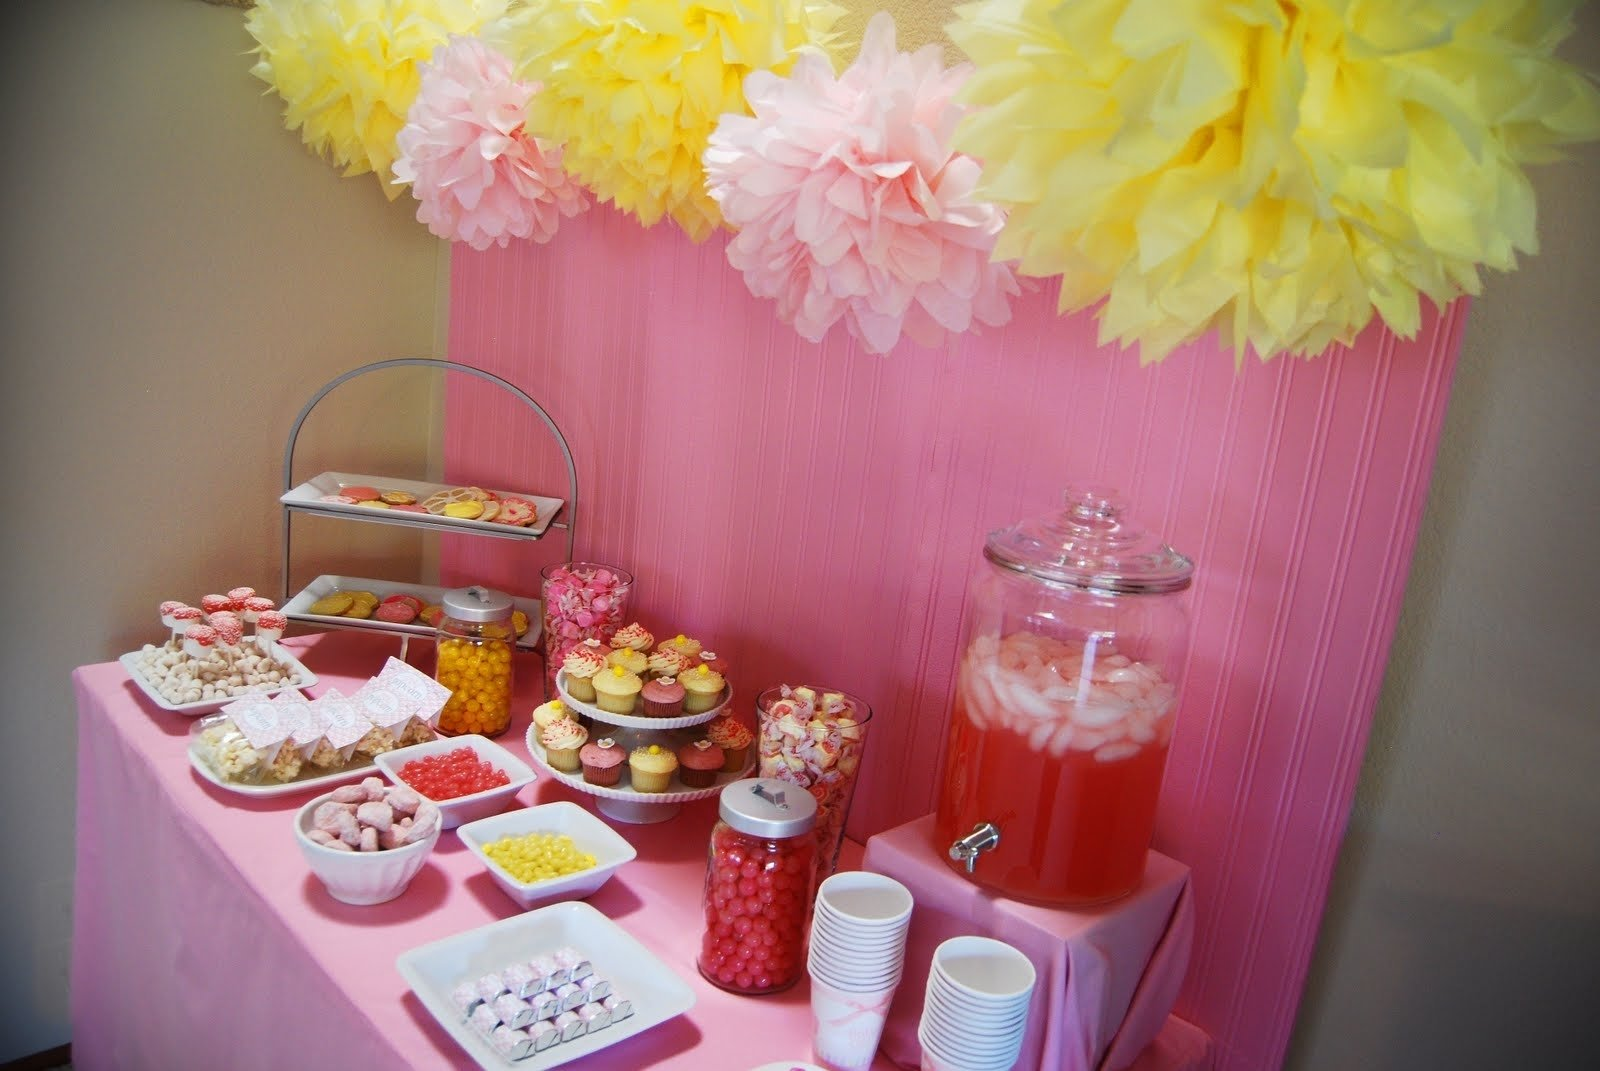 10 Stunning Pink And Yellow Baby Shower Ideas pink and yellow baby shower baby interior design 2020